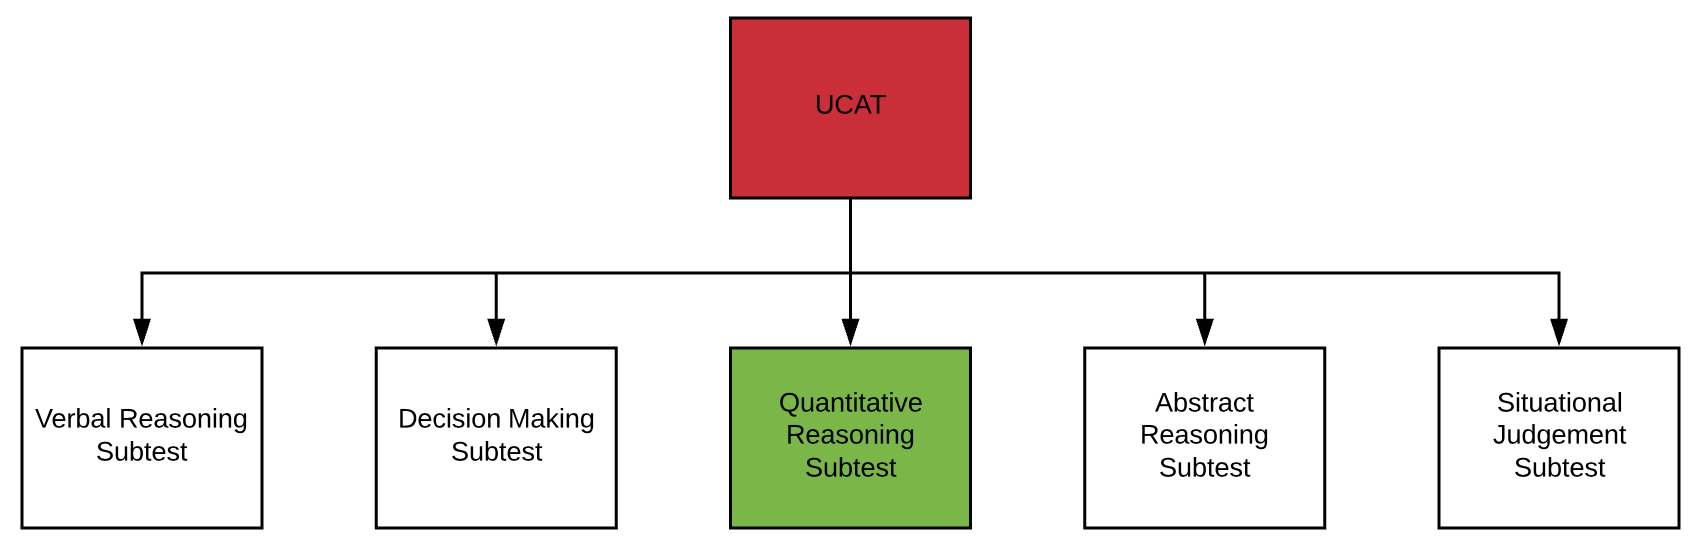 UCAT quantitative reasoning UCAT Guide Part 3 Subtest Flowchart